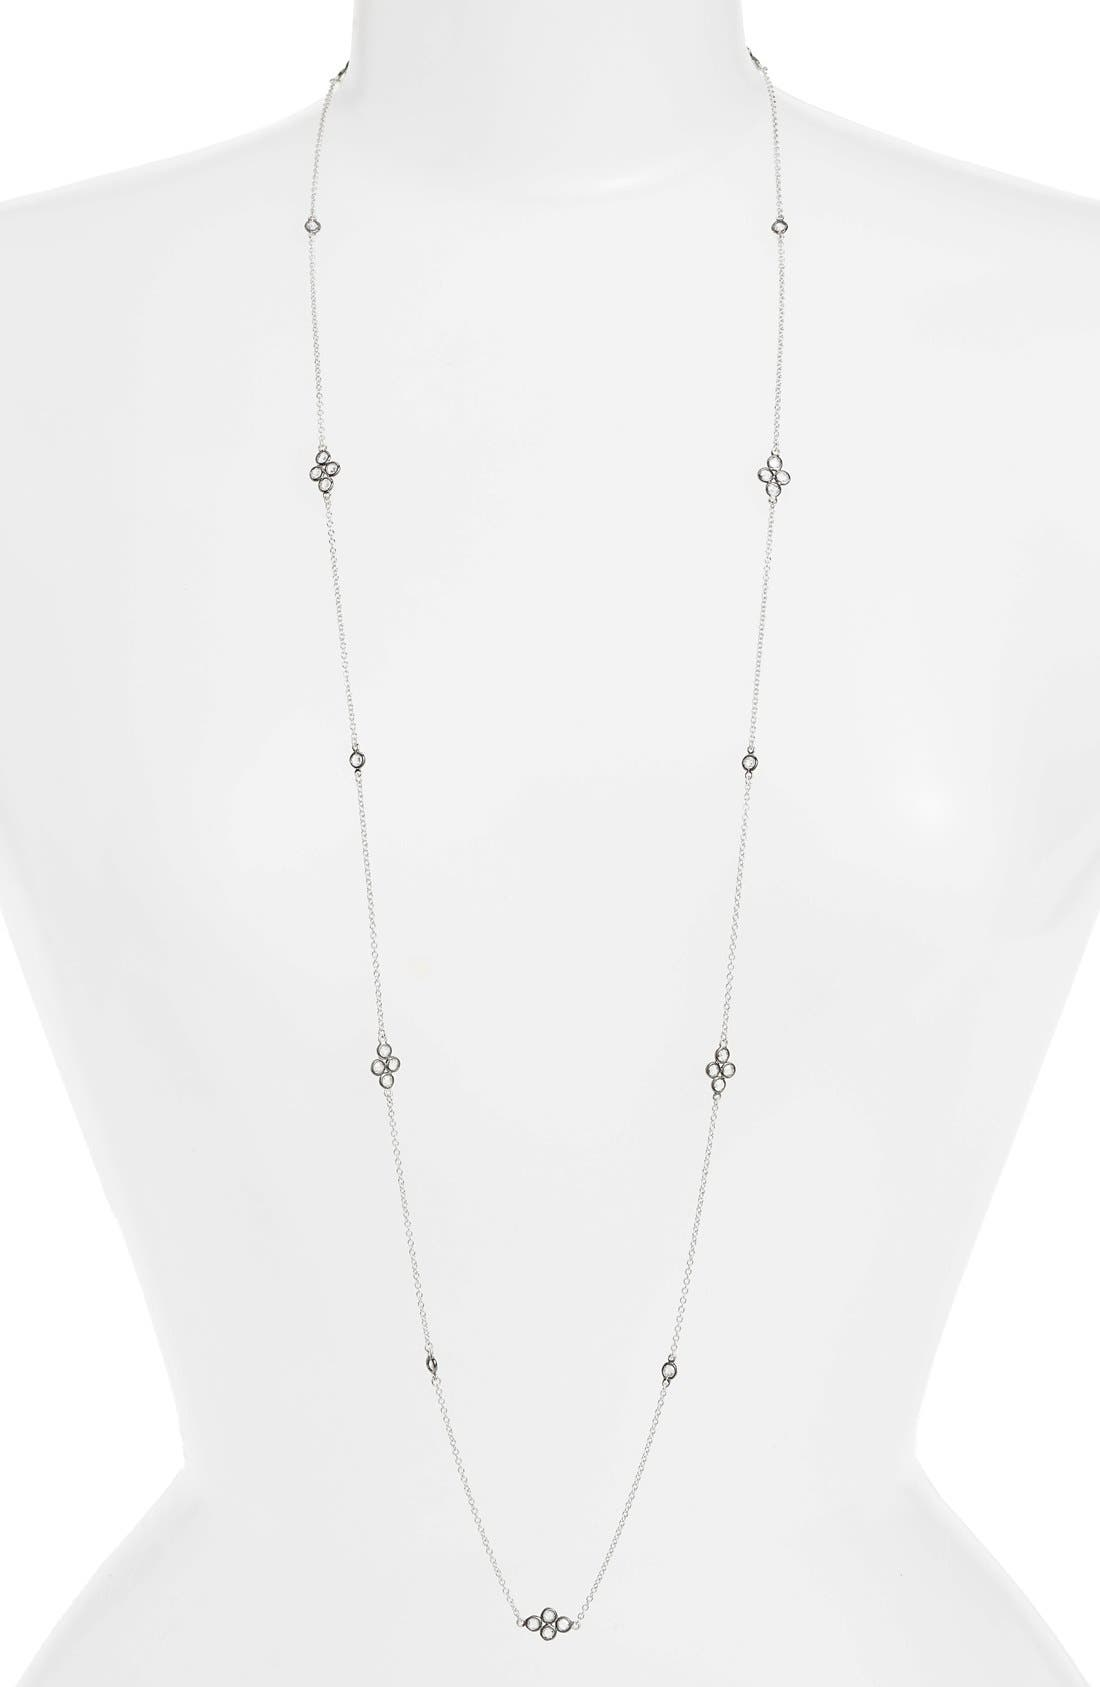 FREIDA ROTHMAN The Standards Long Station Necklace